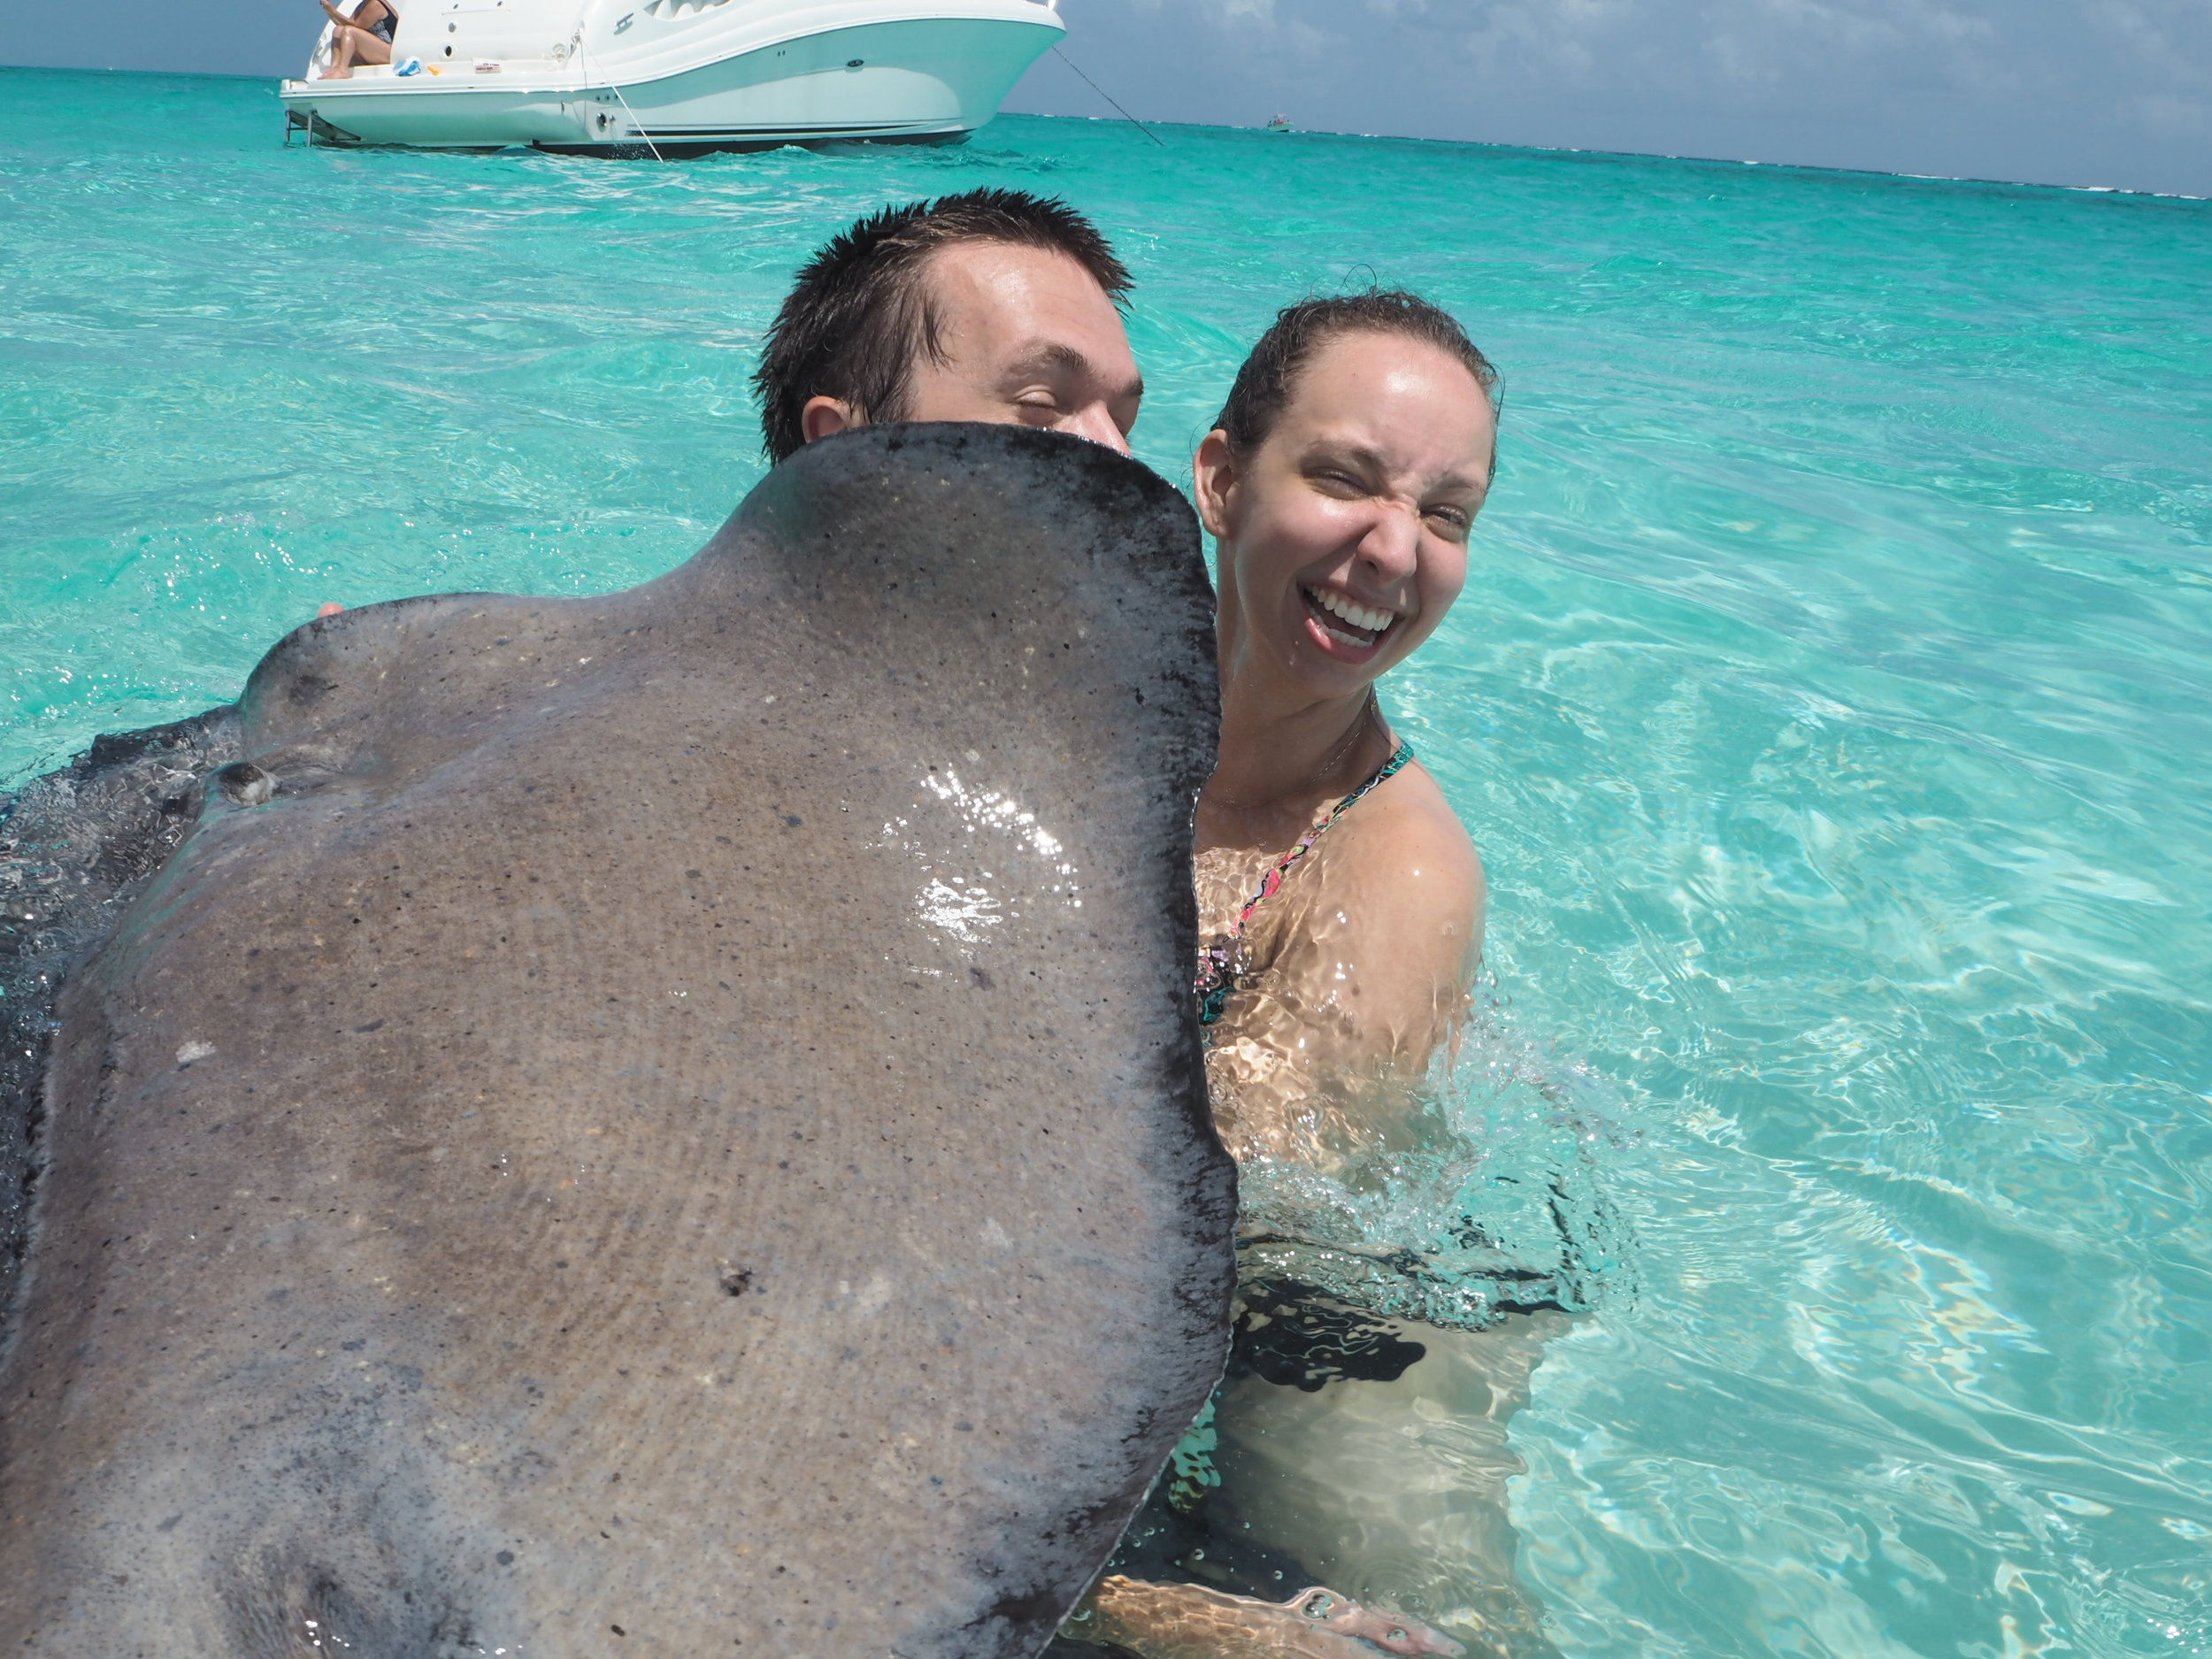 Up close and personal with a stingray at Stingray City in Grand Cayman